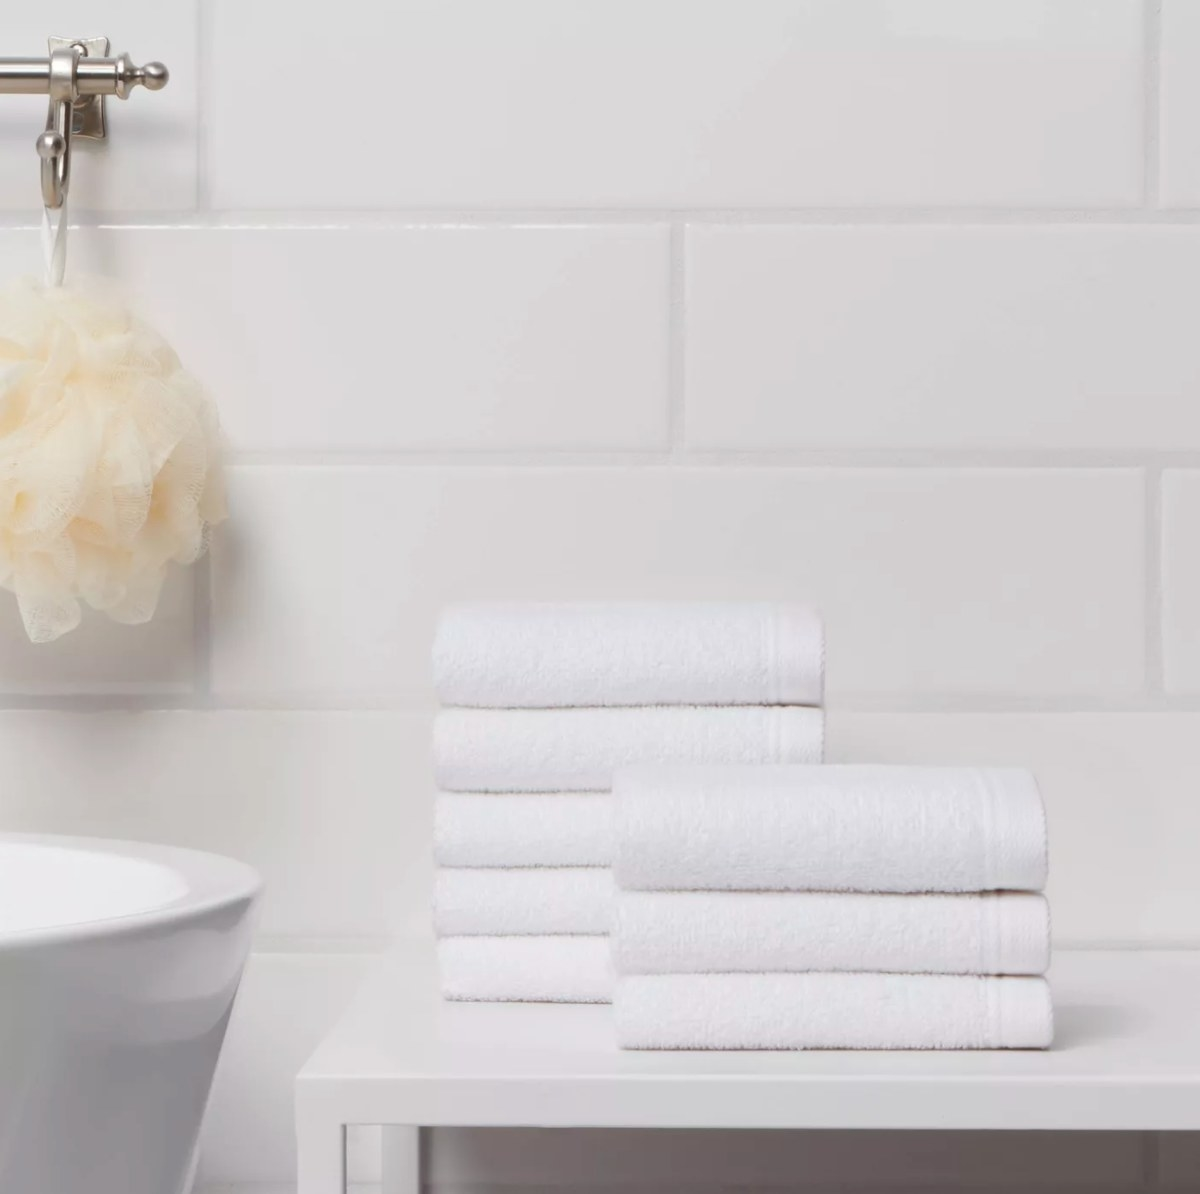 The bath towel set in white on a bathroom counter next to a loofa